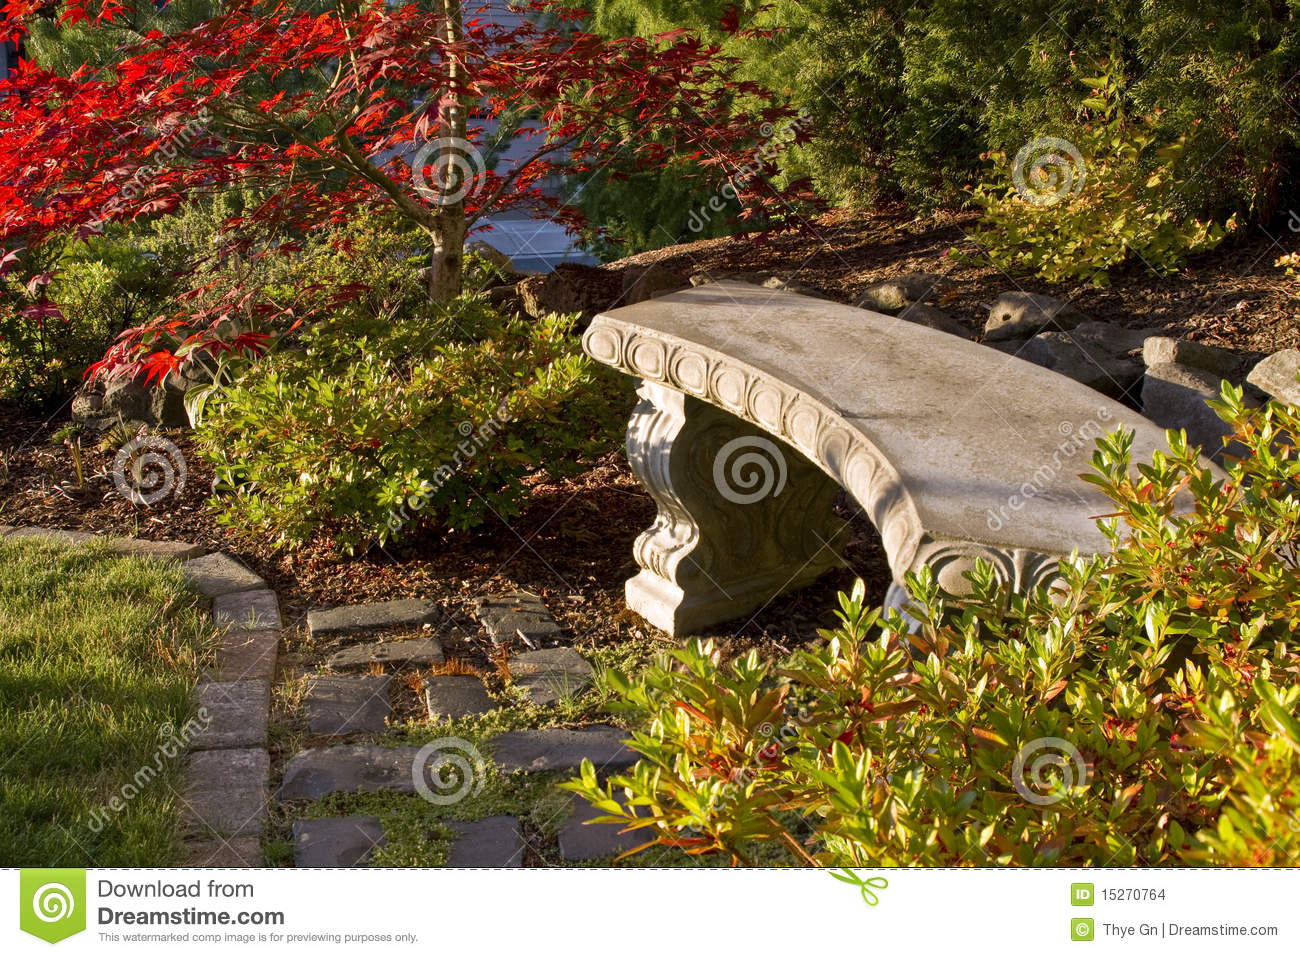 banco de jardim vetor:Concrete Garden Bench on Cobblestones with Trees and Shrubs.